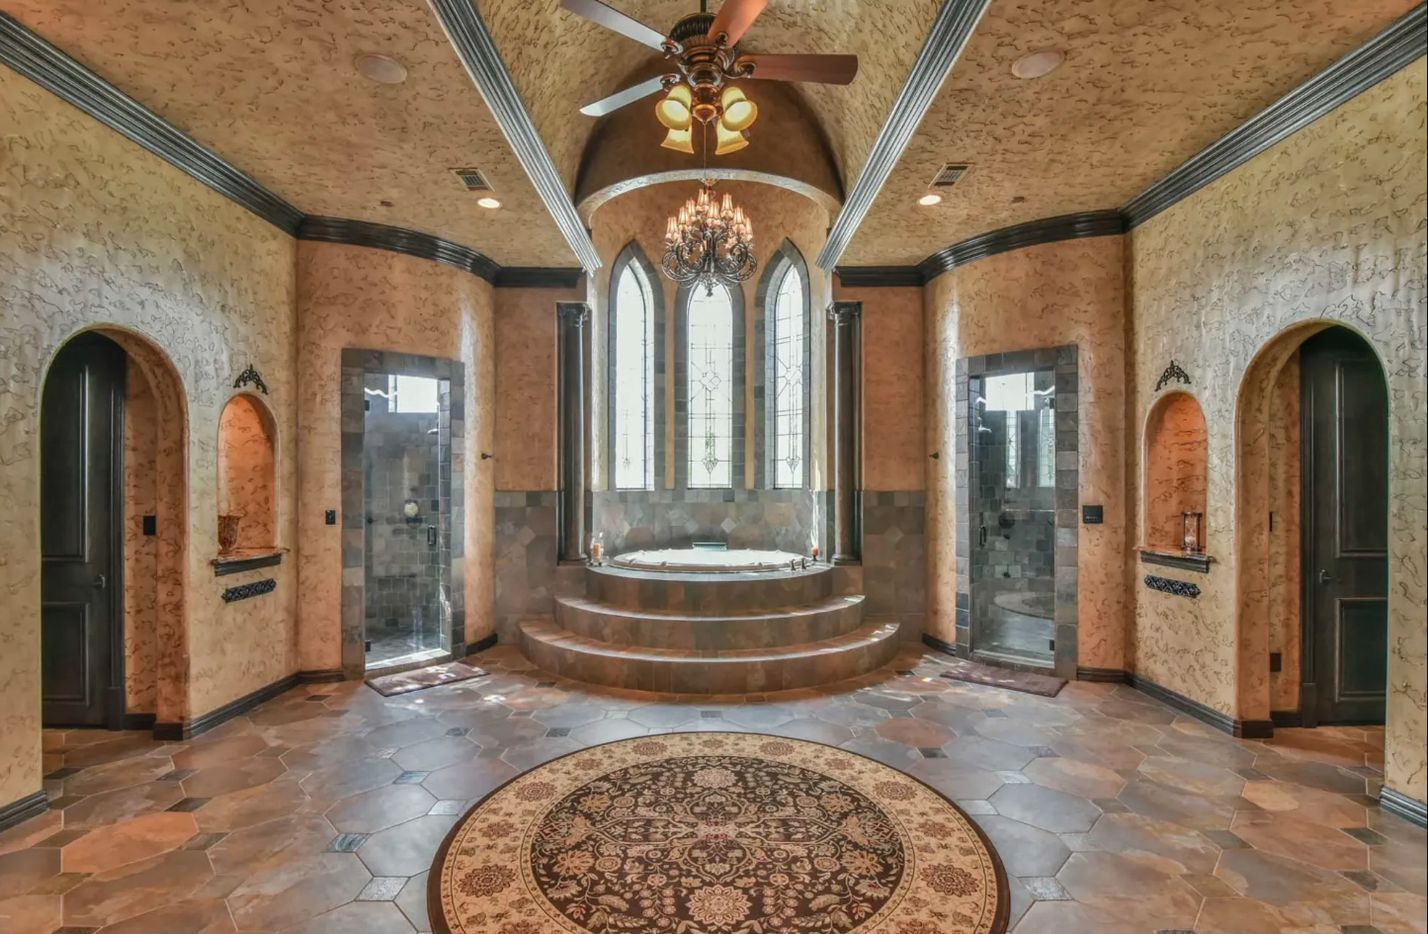 The bathroom of the Southlake estate.